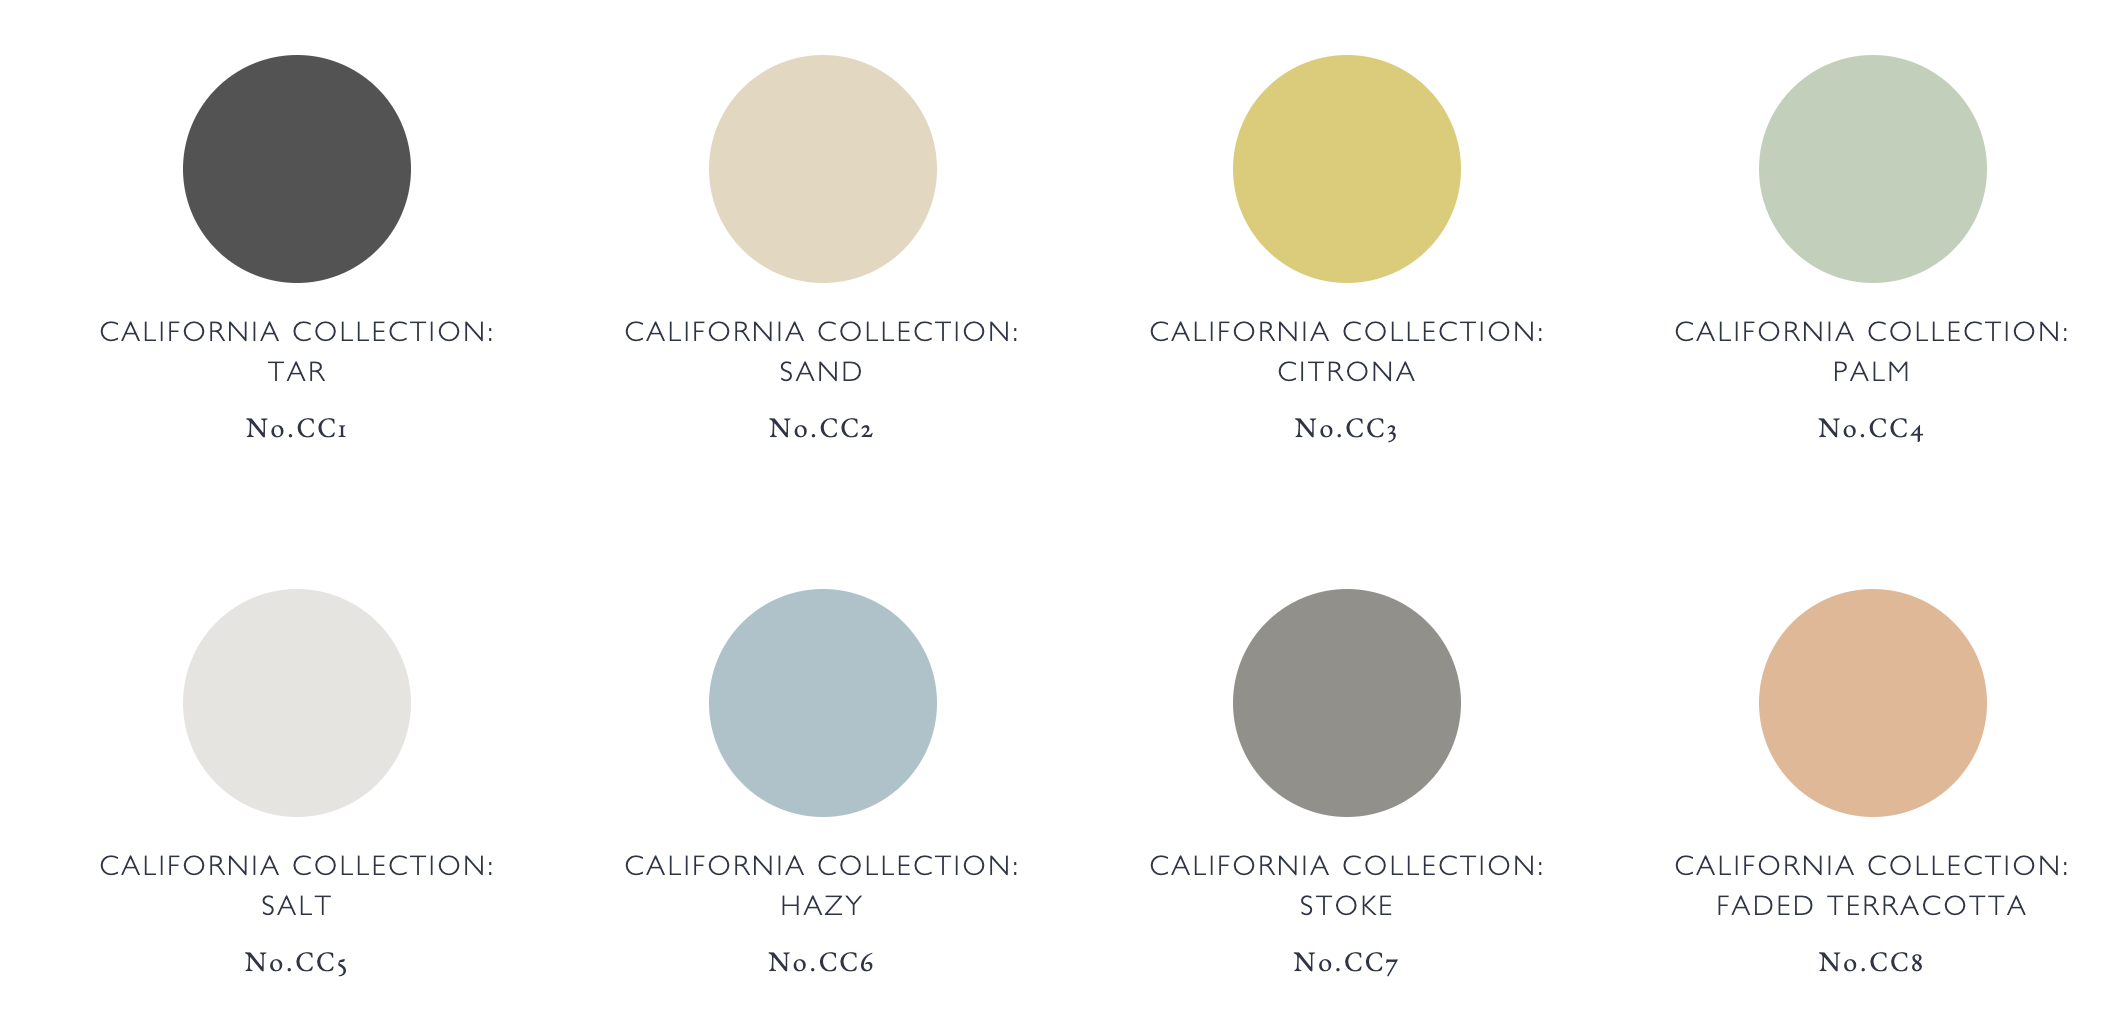 The California Collection By Kelly Wearstler and Farrow & Ball